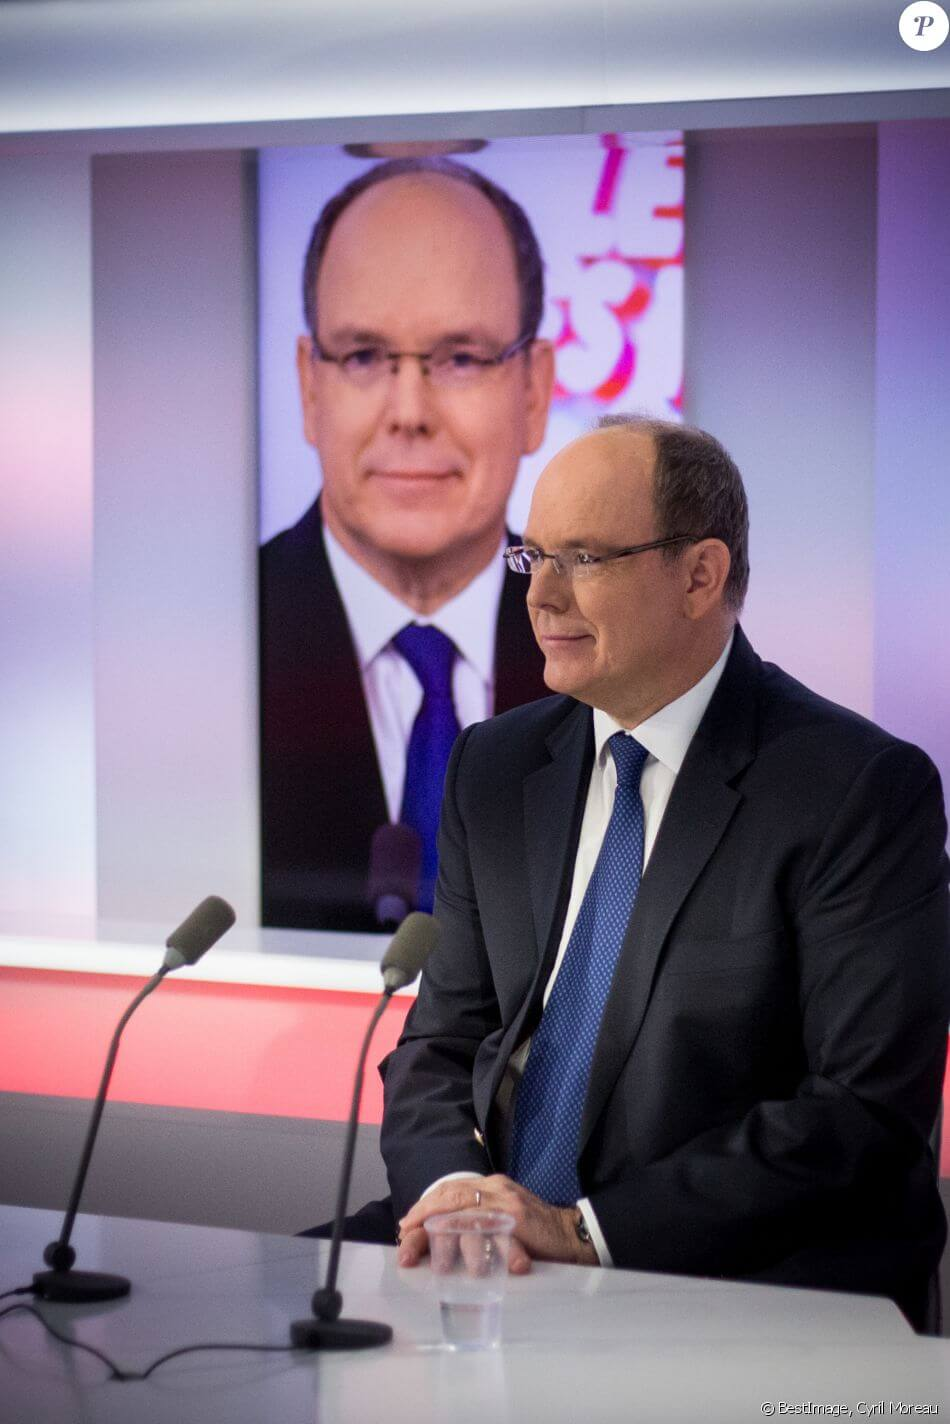 Prince Albert II was interviewed by Cyril Viguier on the Public Senate channel